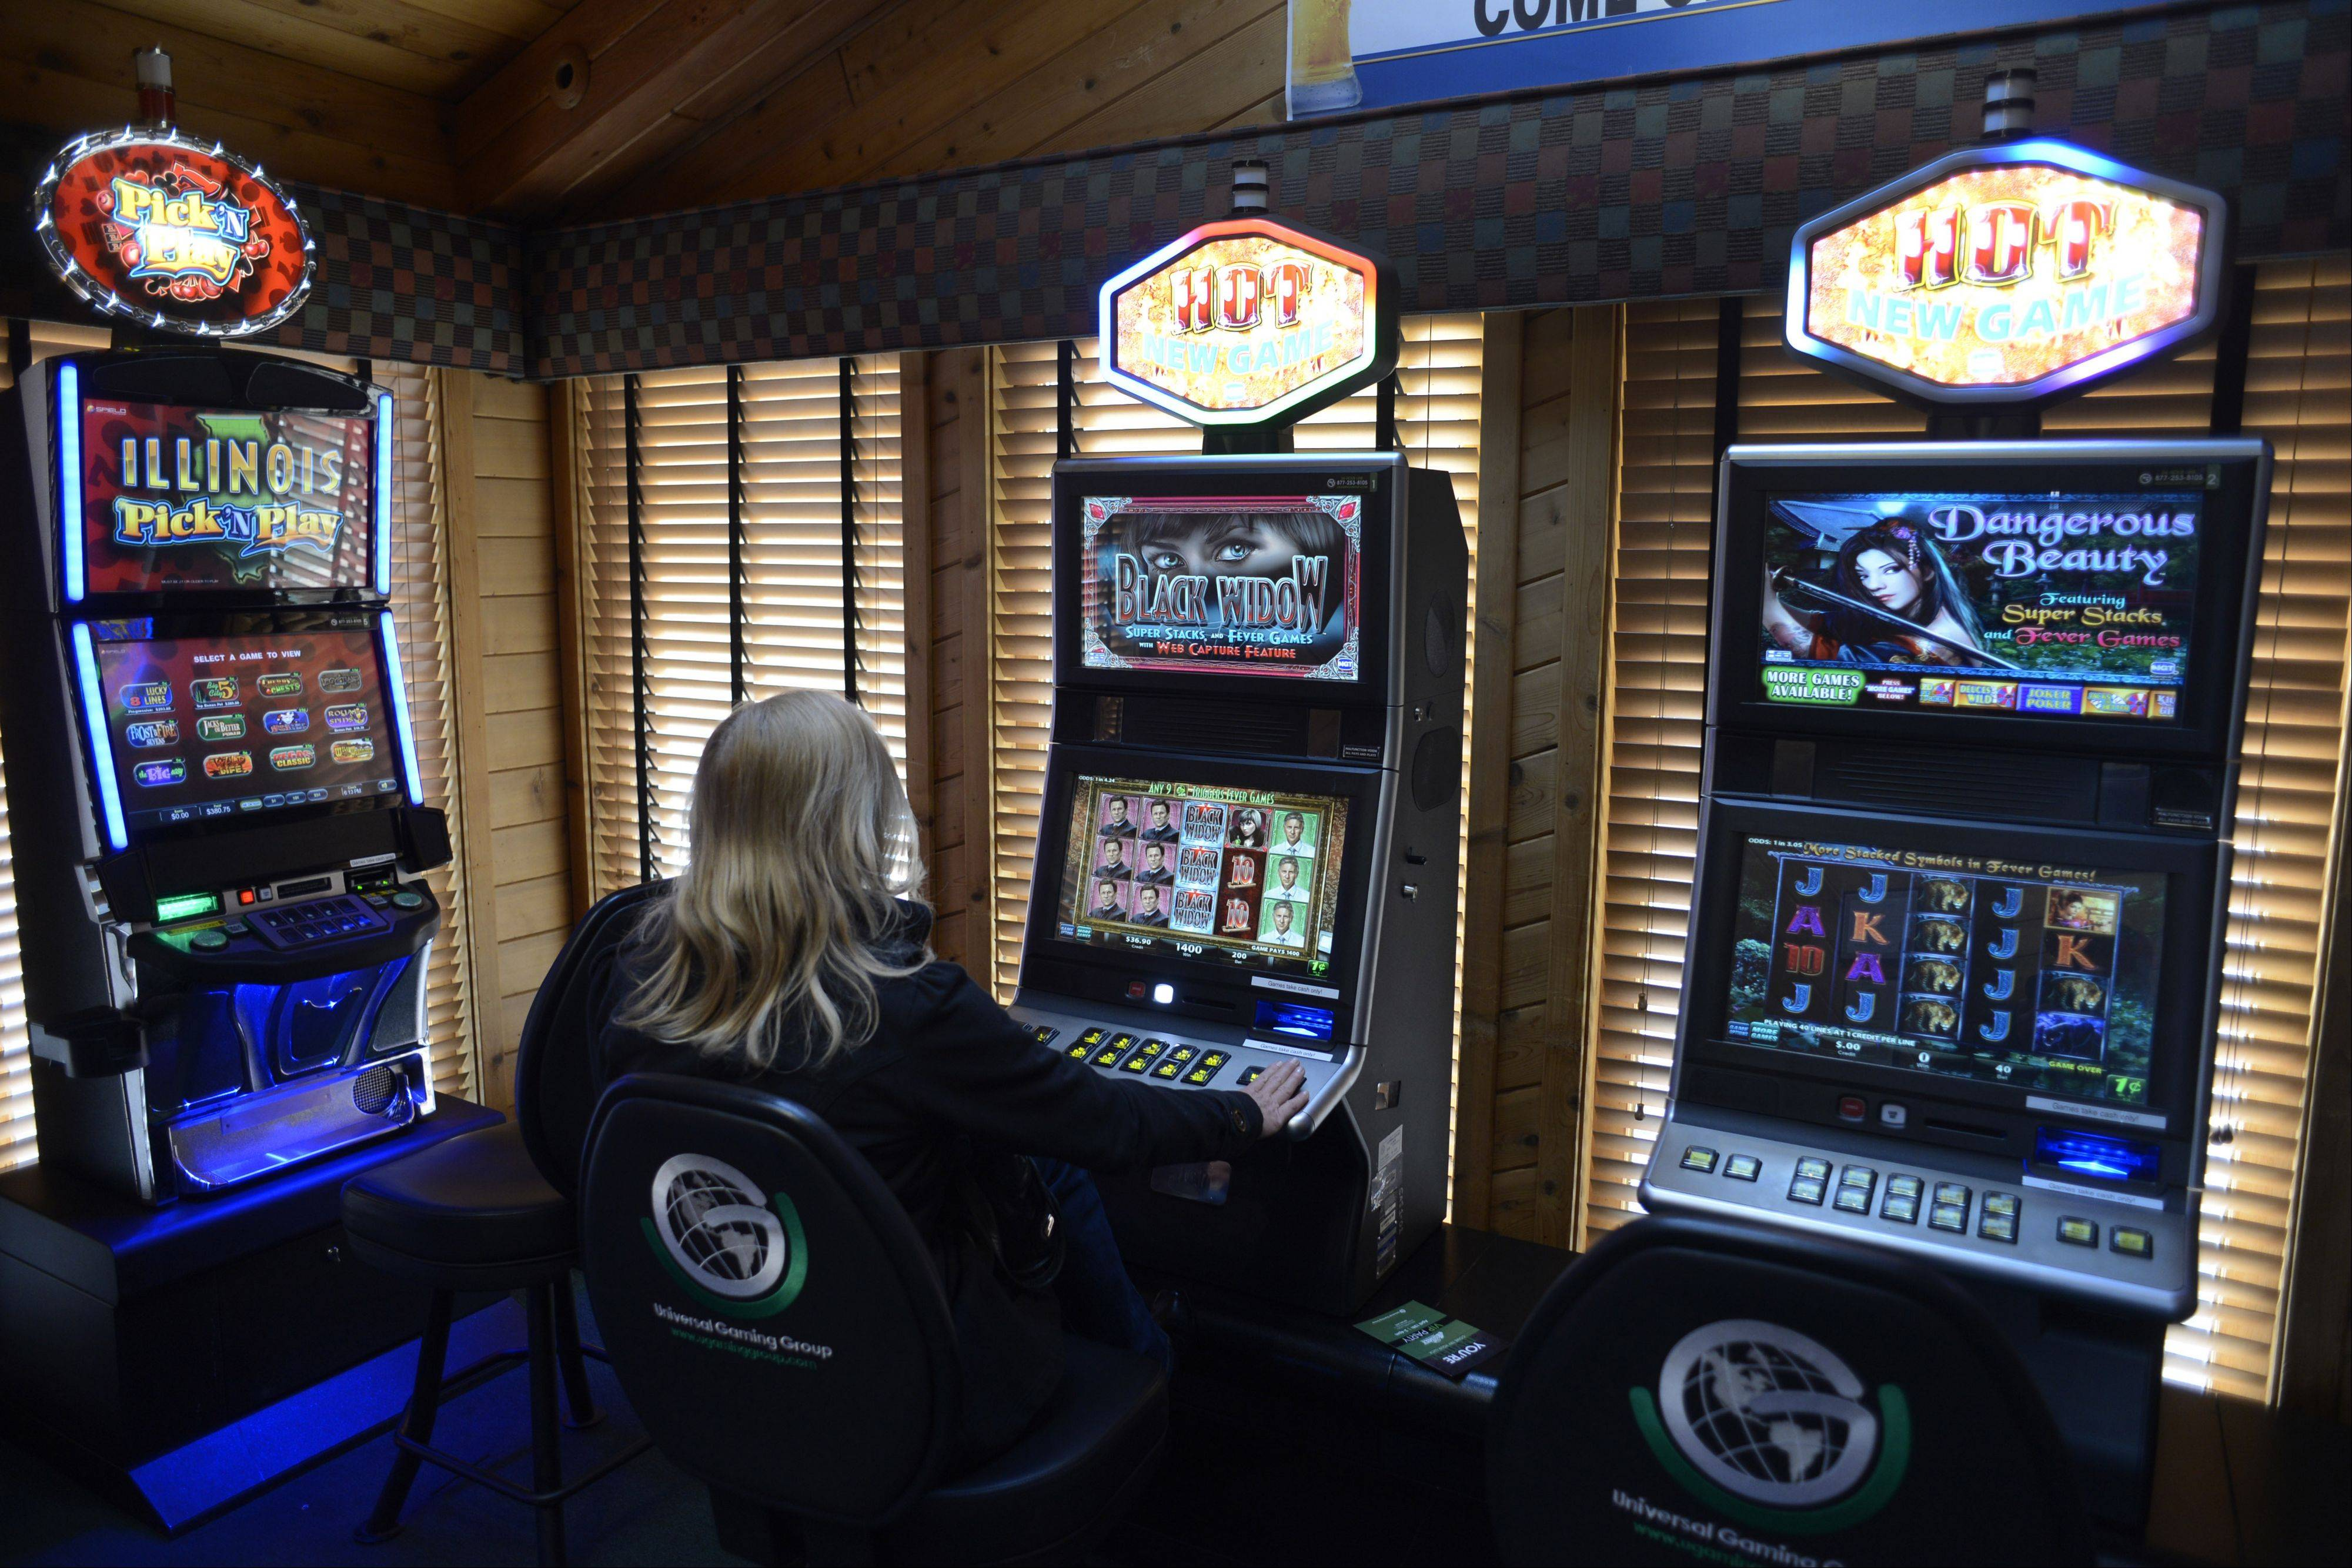 Barrington officials are in the process of soliciting public input on video gambling after several local bars urged them to reconsider the village's ban. Business owners say the ban puts them at a disadvantage to establishments in other towns that allow video gambling.